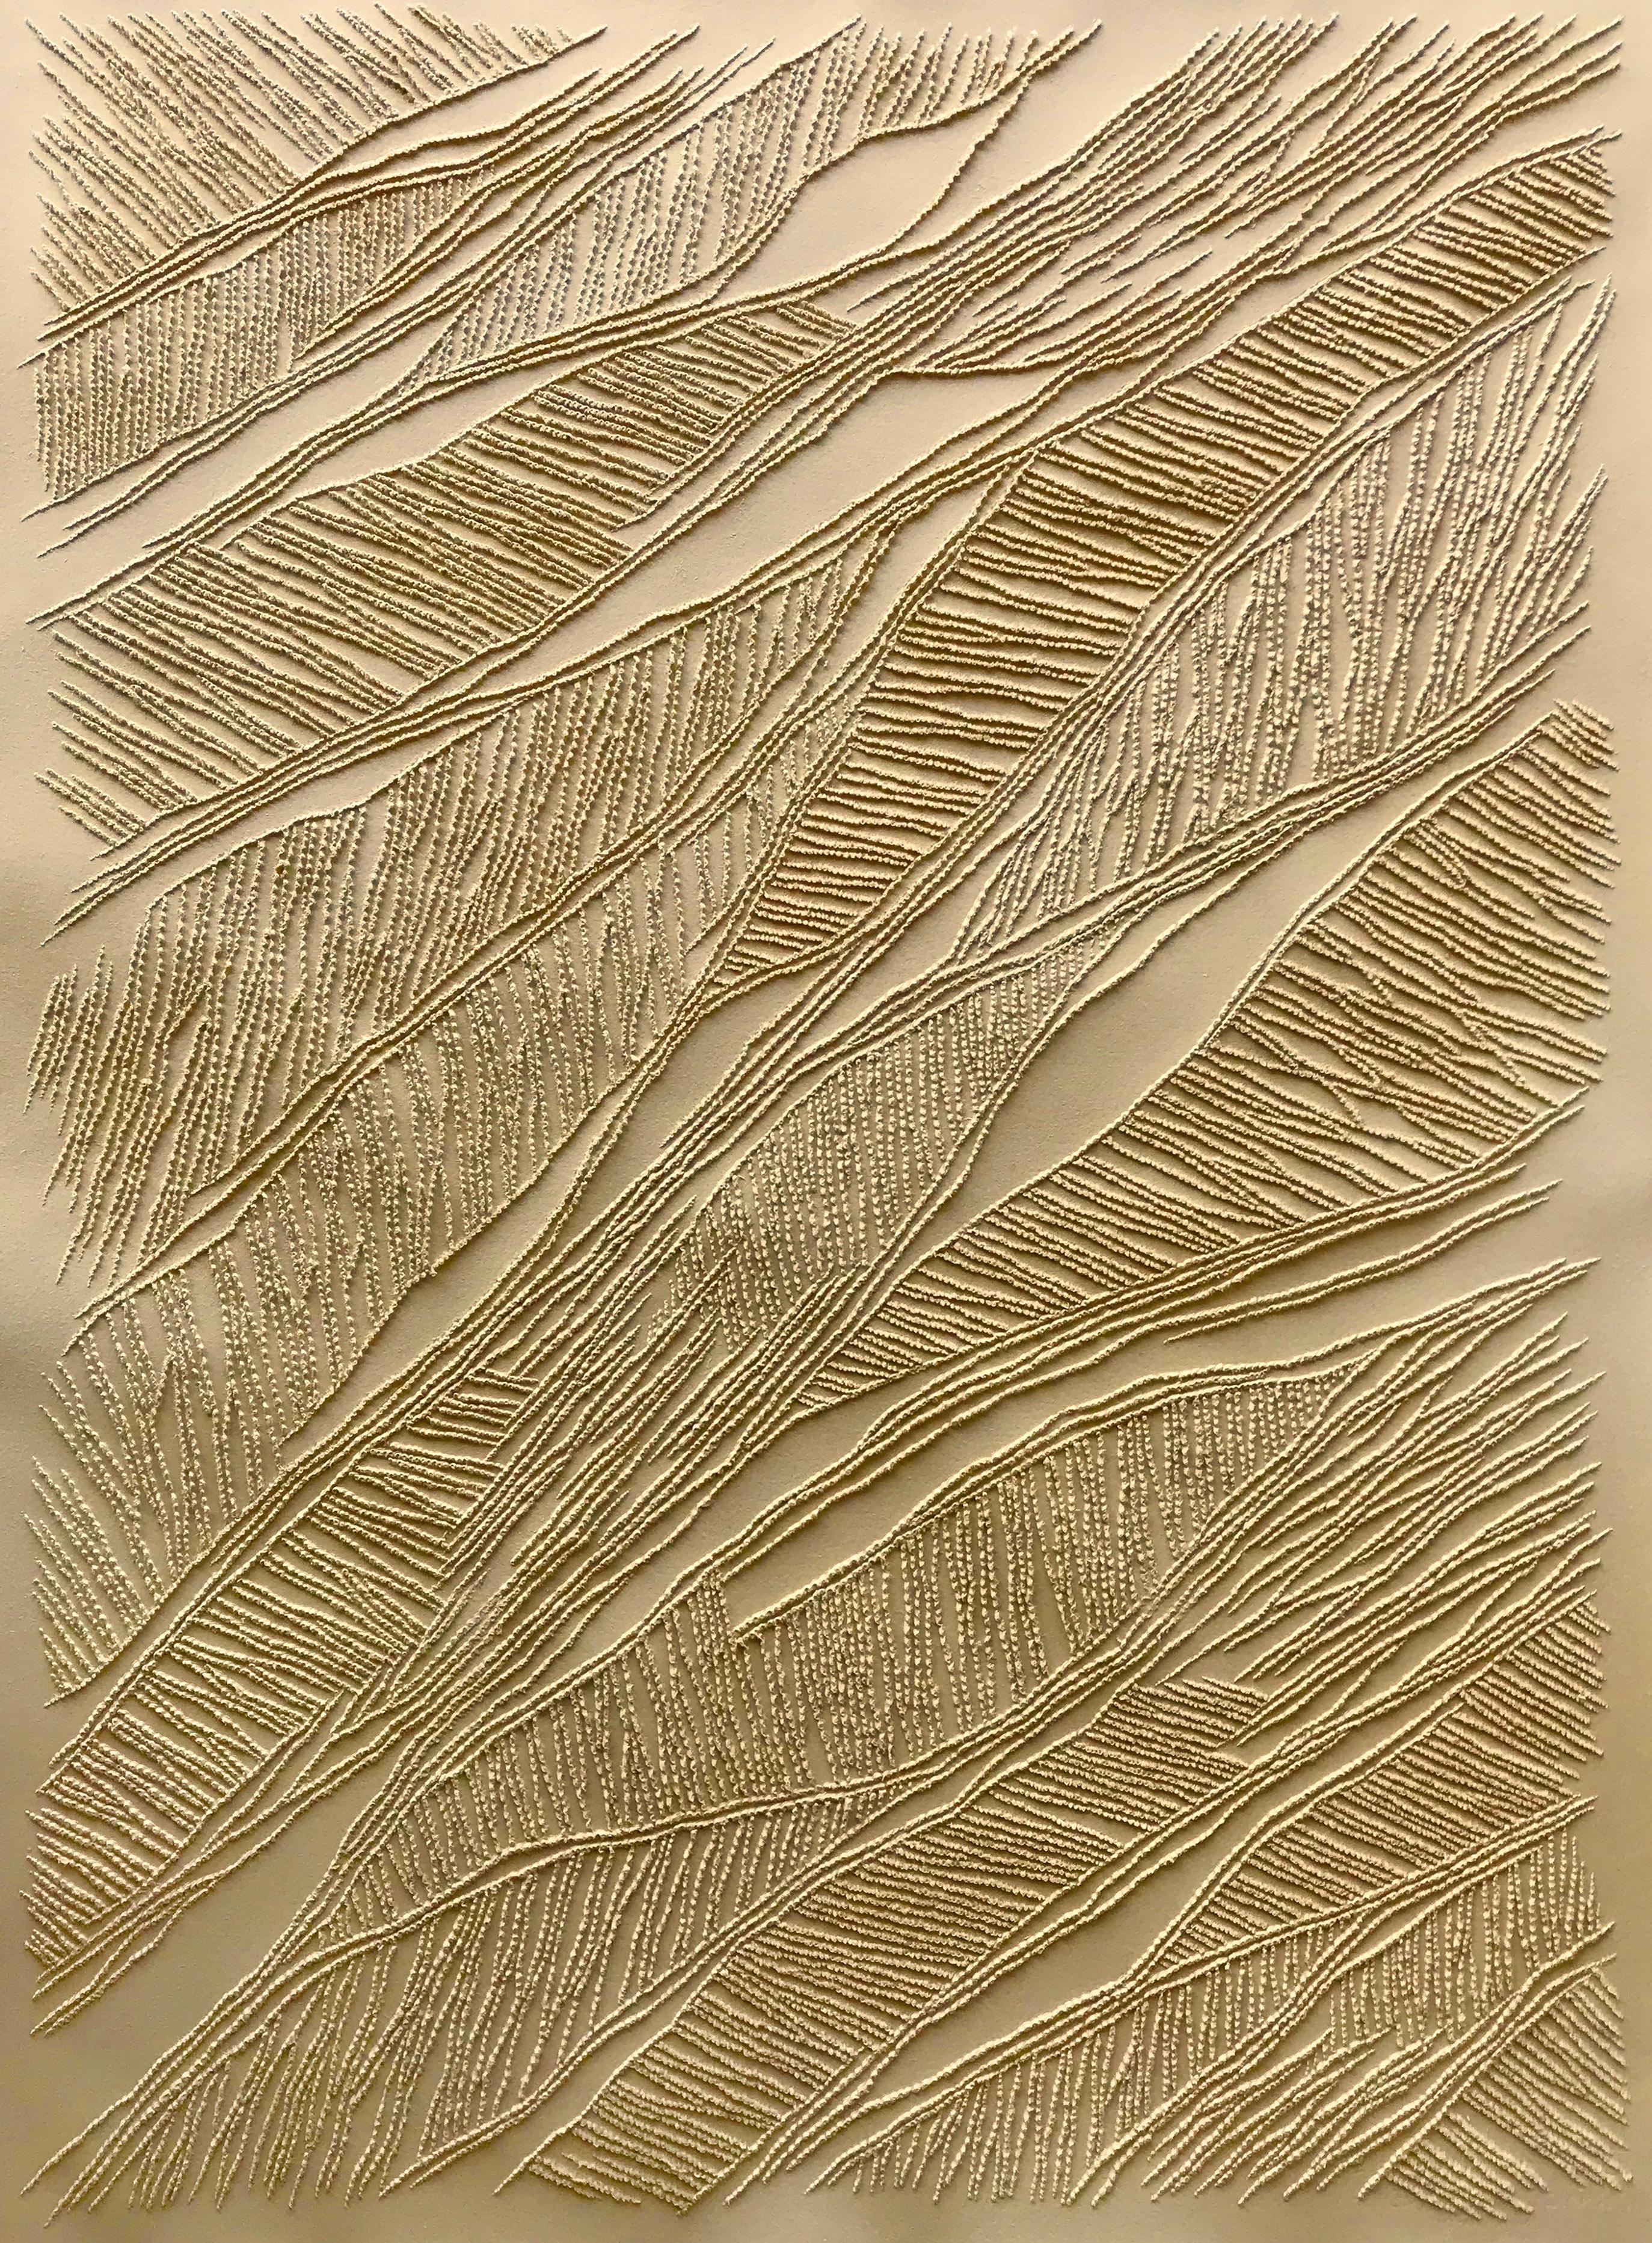 Ochre - intricate gold brown 3D abstract geometric drypoint drawing on paper